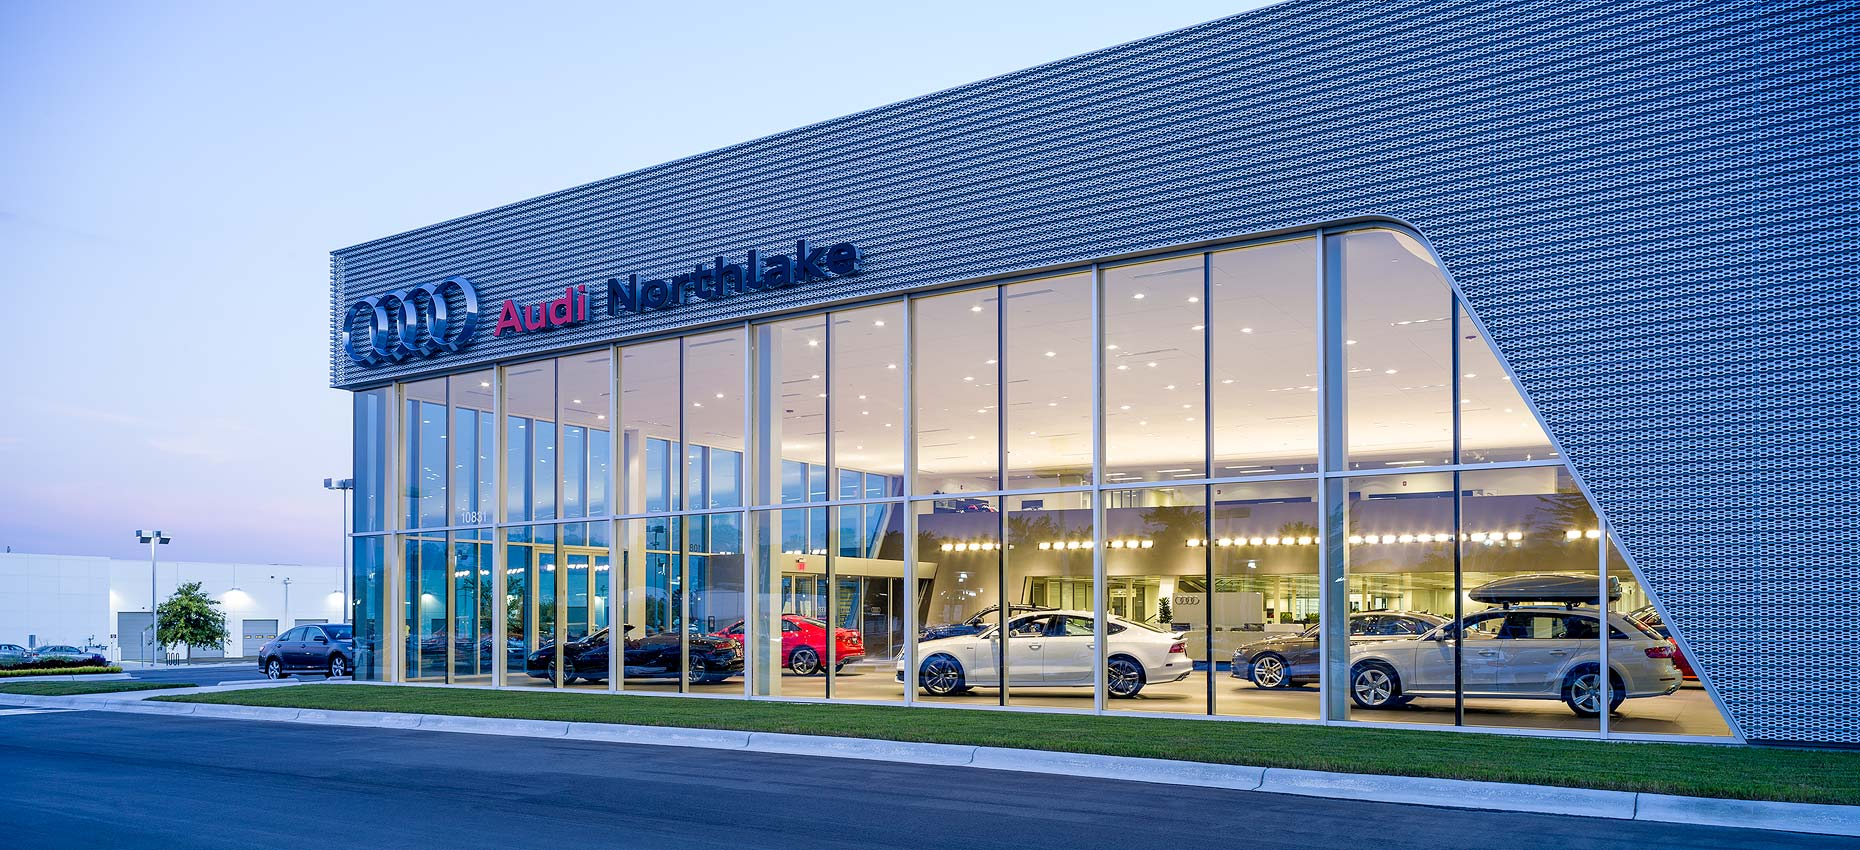 North Carolina Architectural Photographer Charlotte Architectural - Audi of northlake